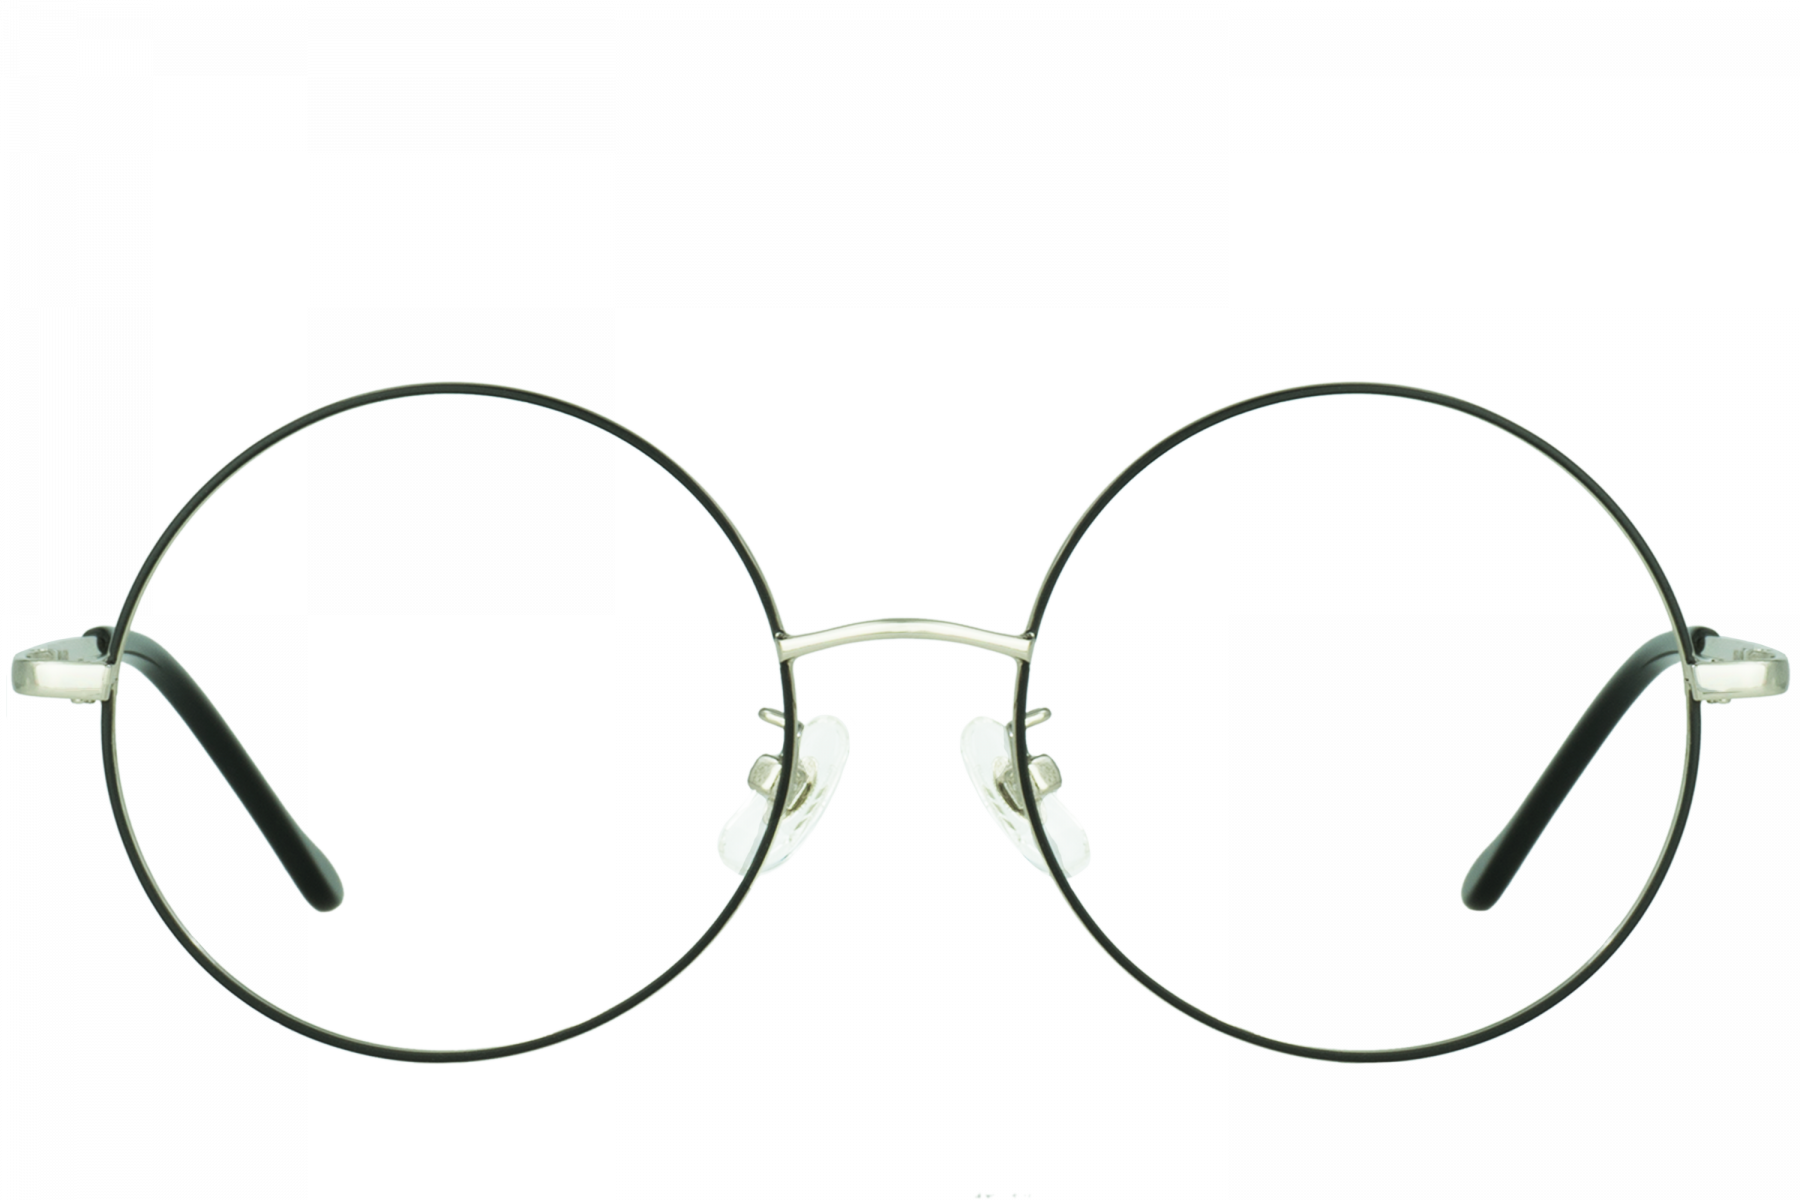 Glasses png images free. Vision clipart circular glass